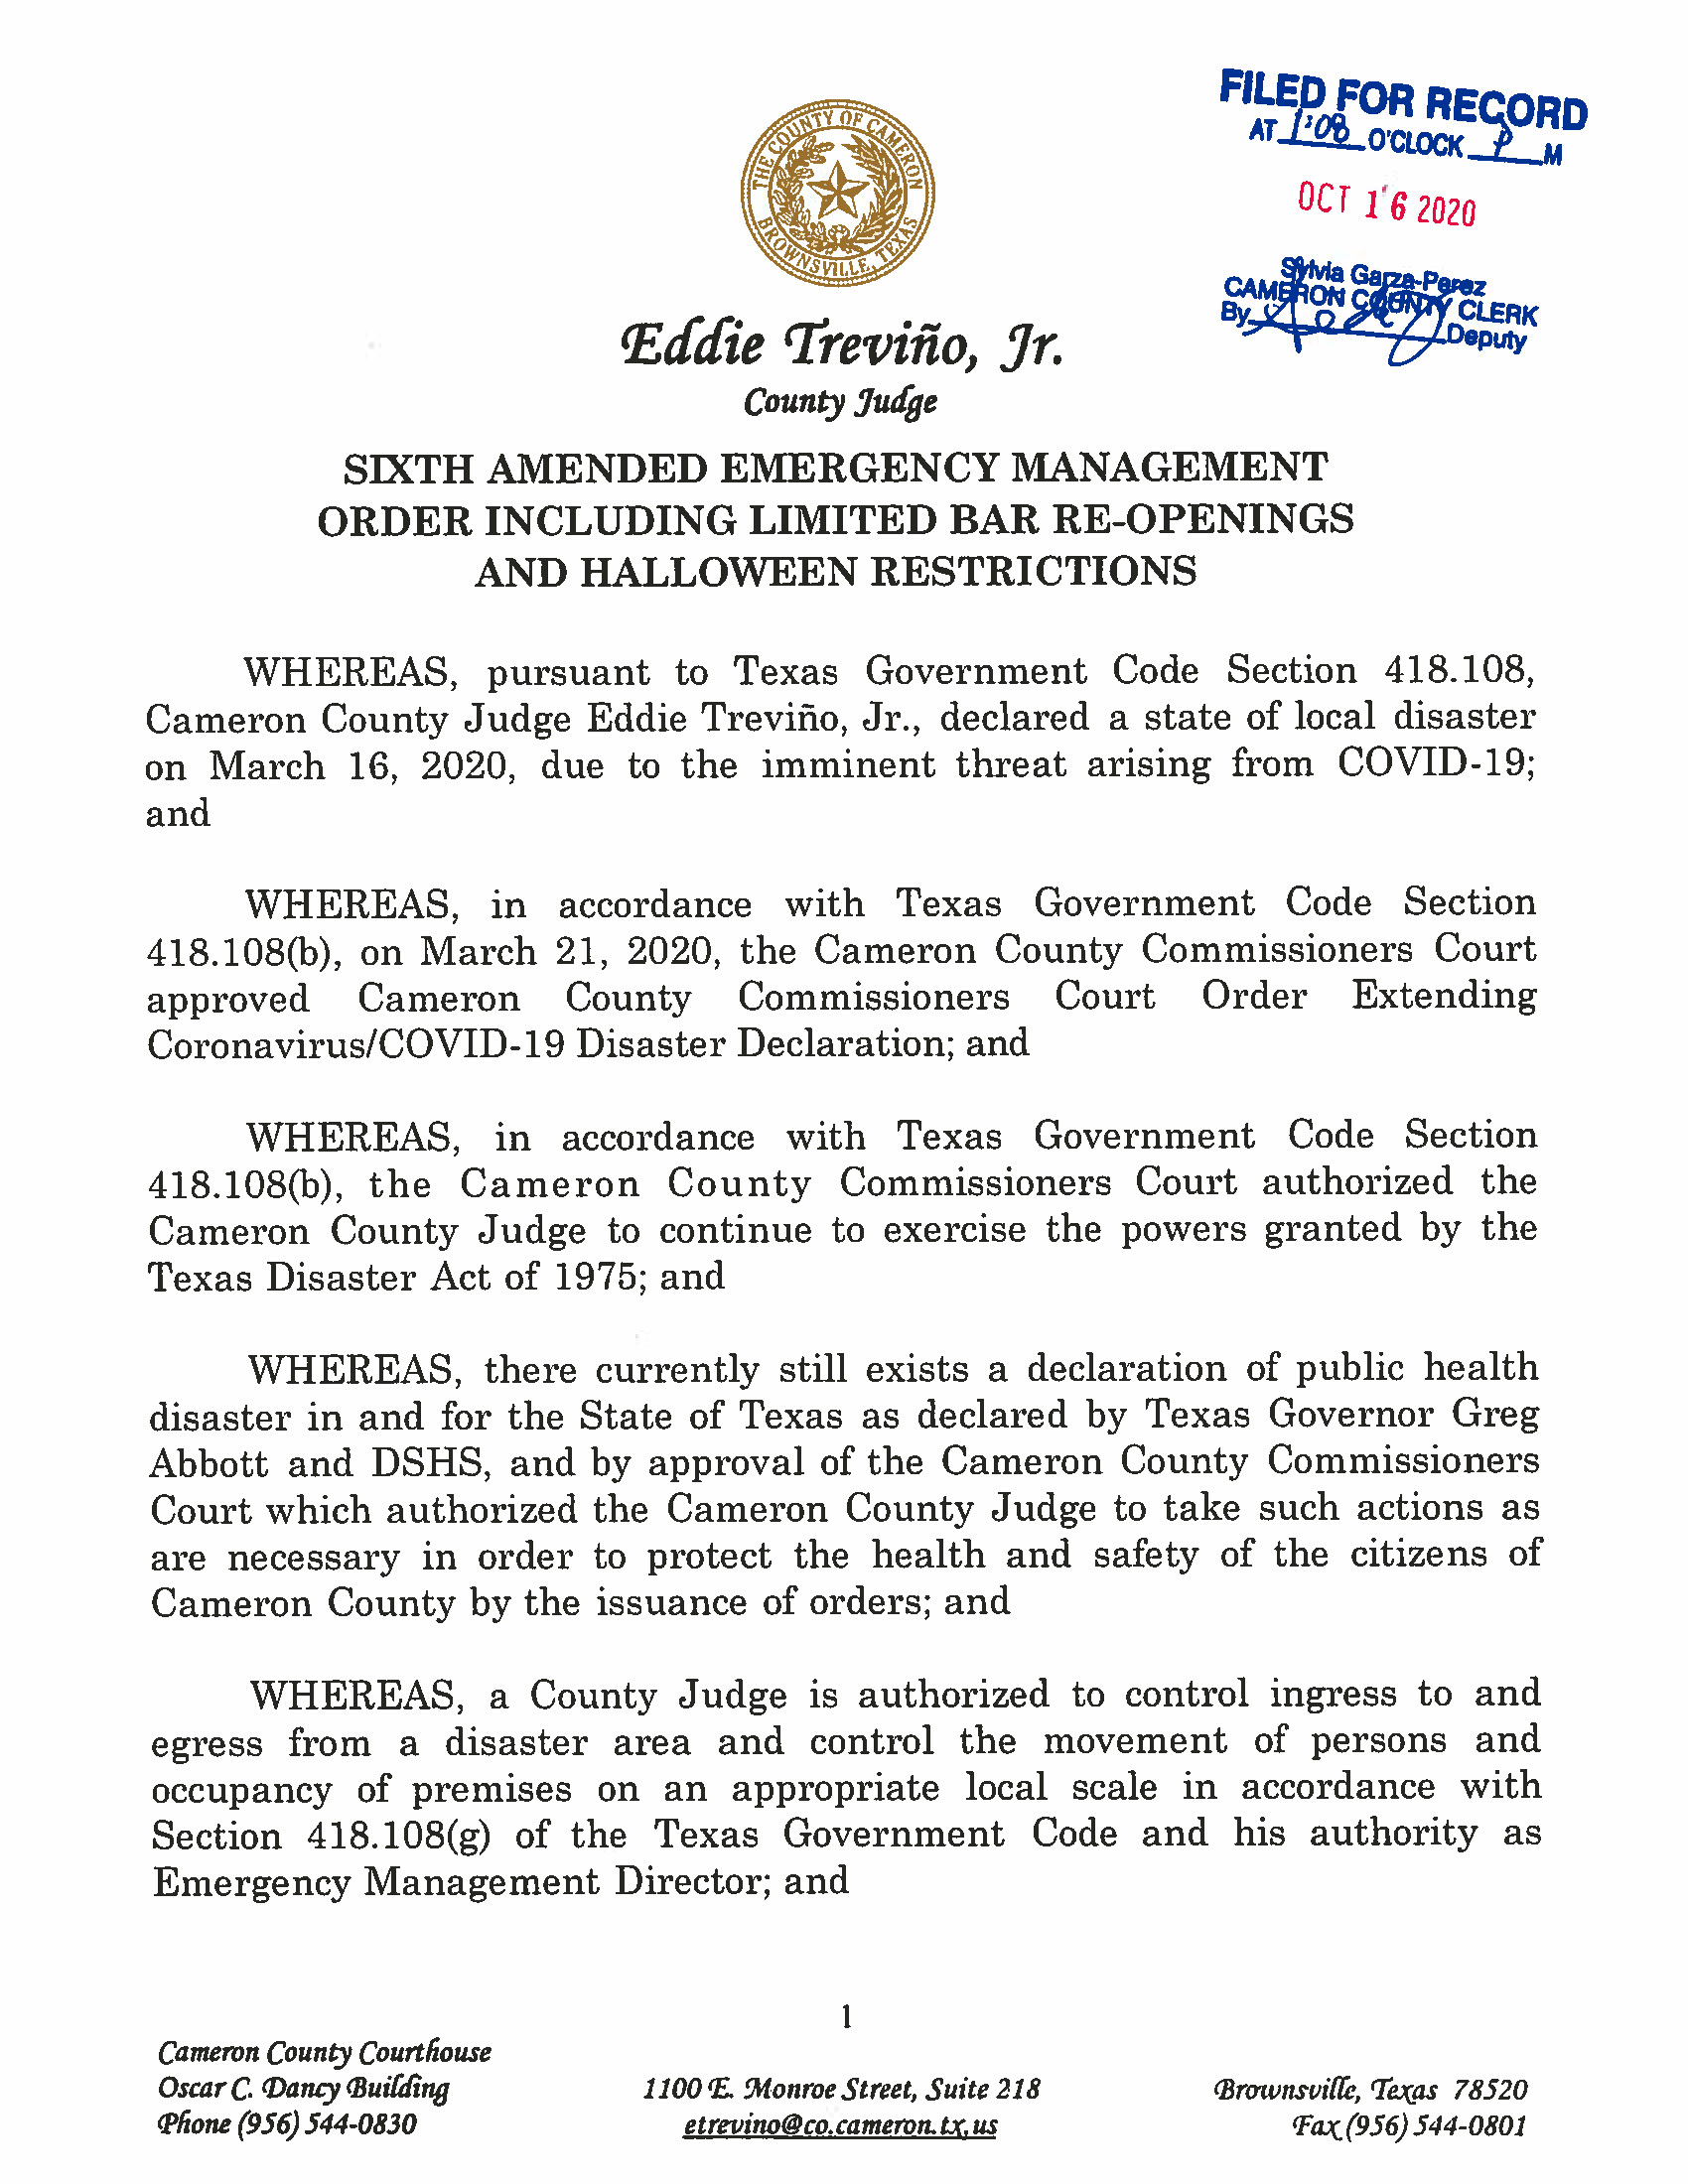 10.16.2020 ORDER Sixth Amended Emergency Management Order Including Limited Bar Re Openings And Halloween Restrictions Page 01